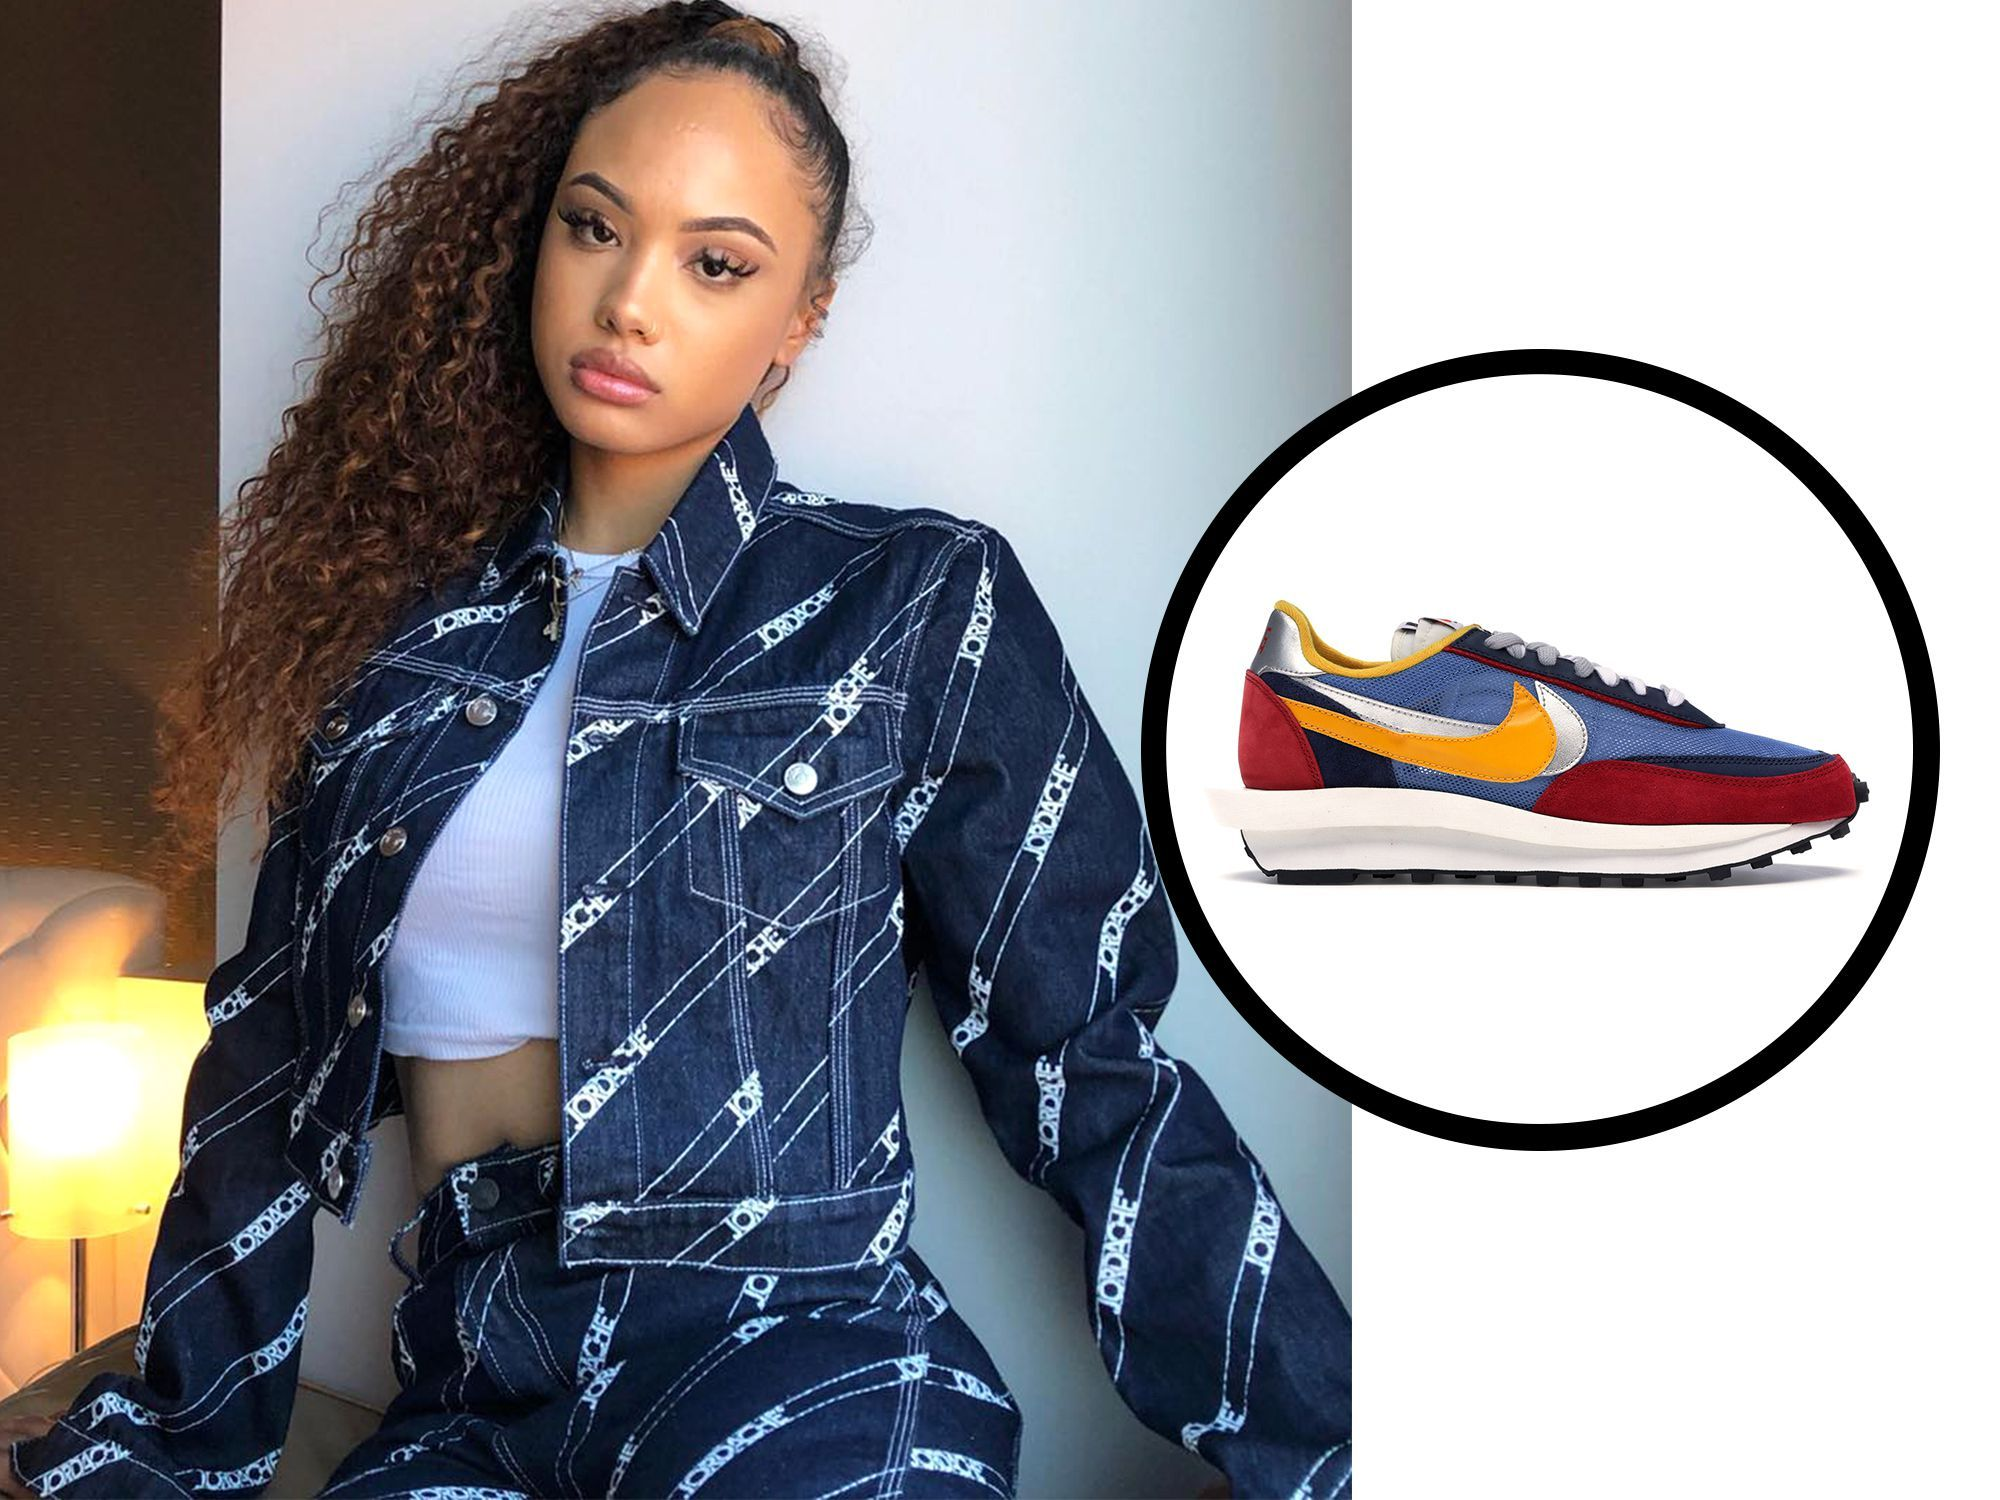 The 19 Hottest Sneakers to Buy Right